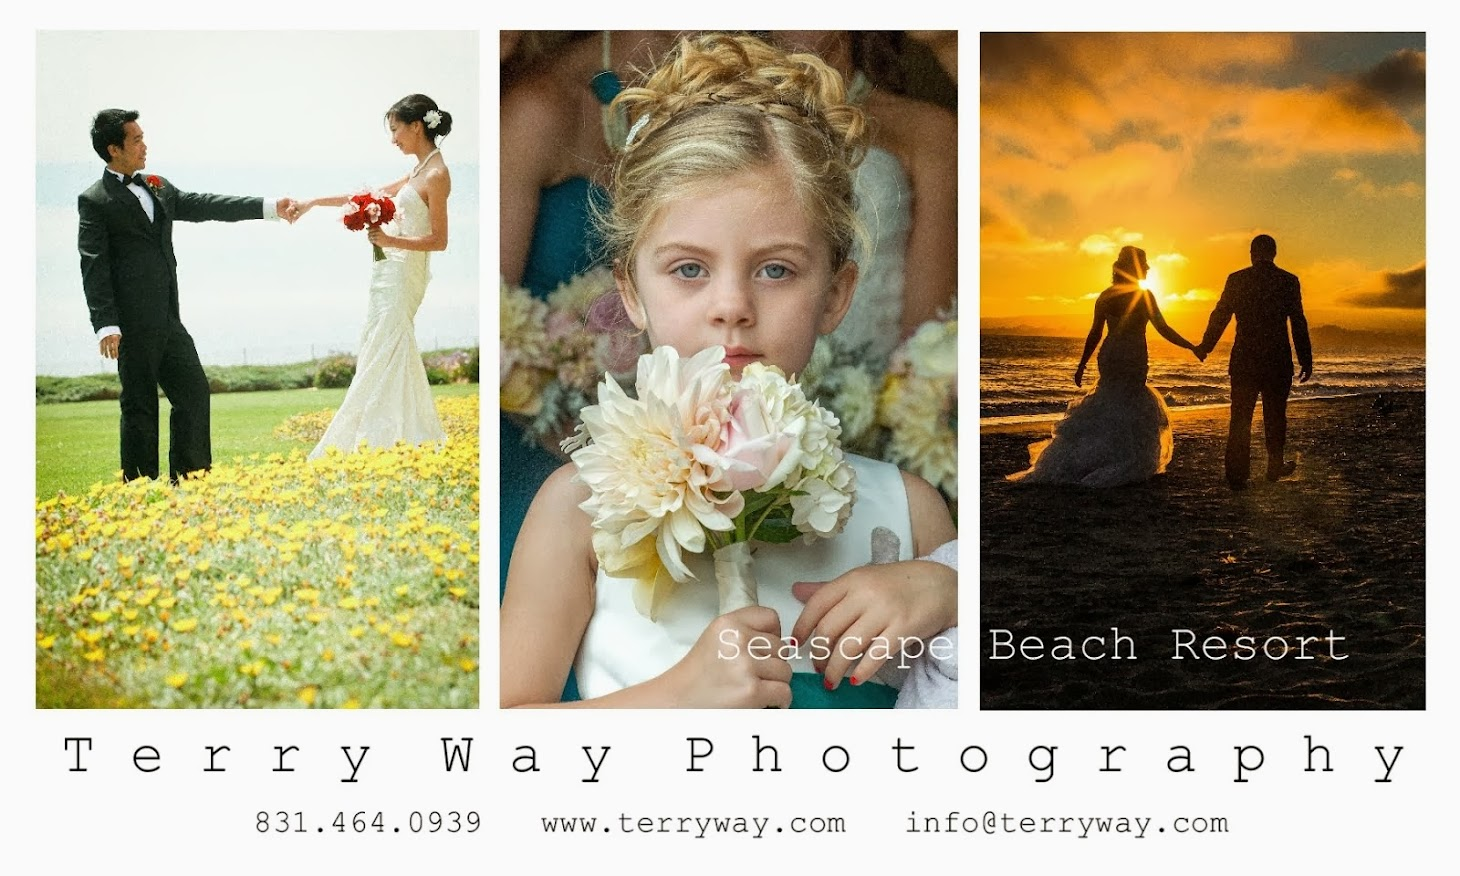 Seascape Beach Resort Wedding Photographer Terry Way